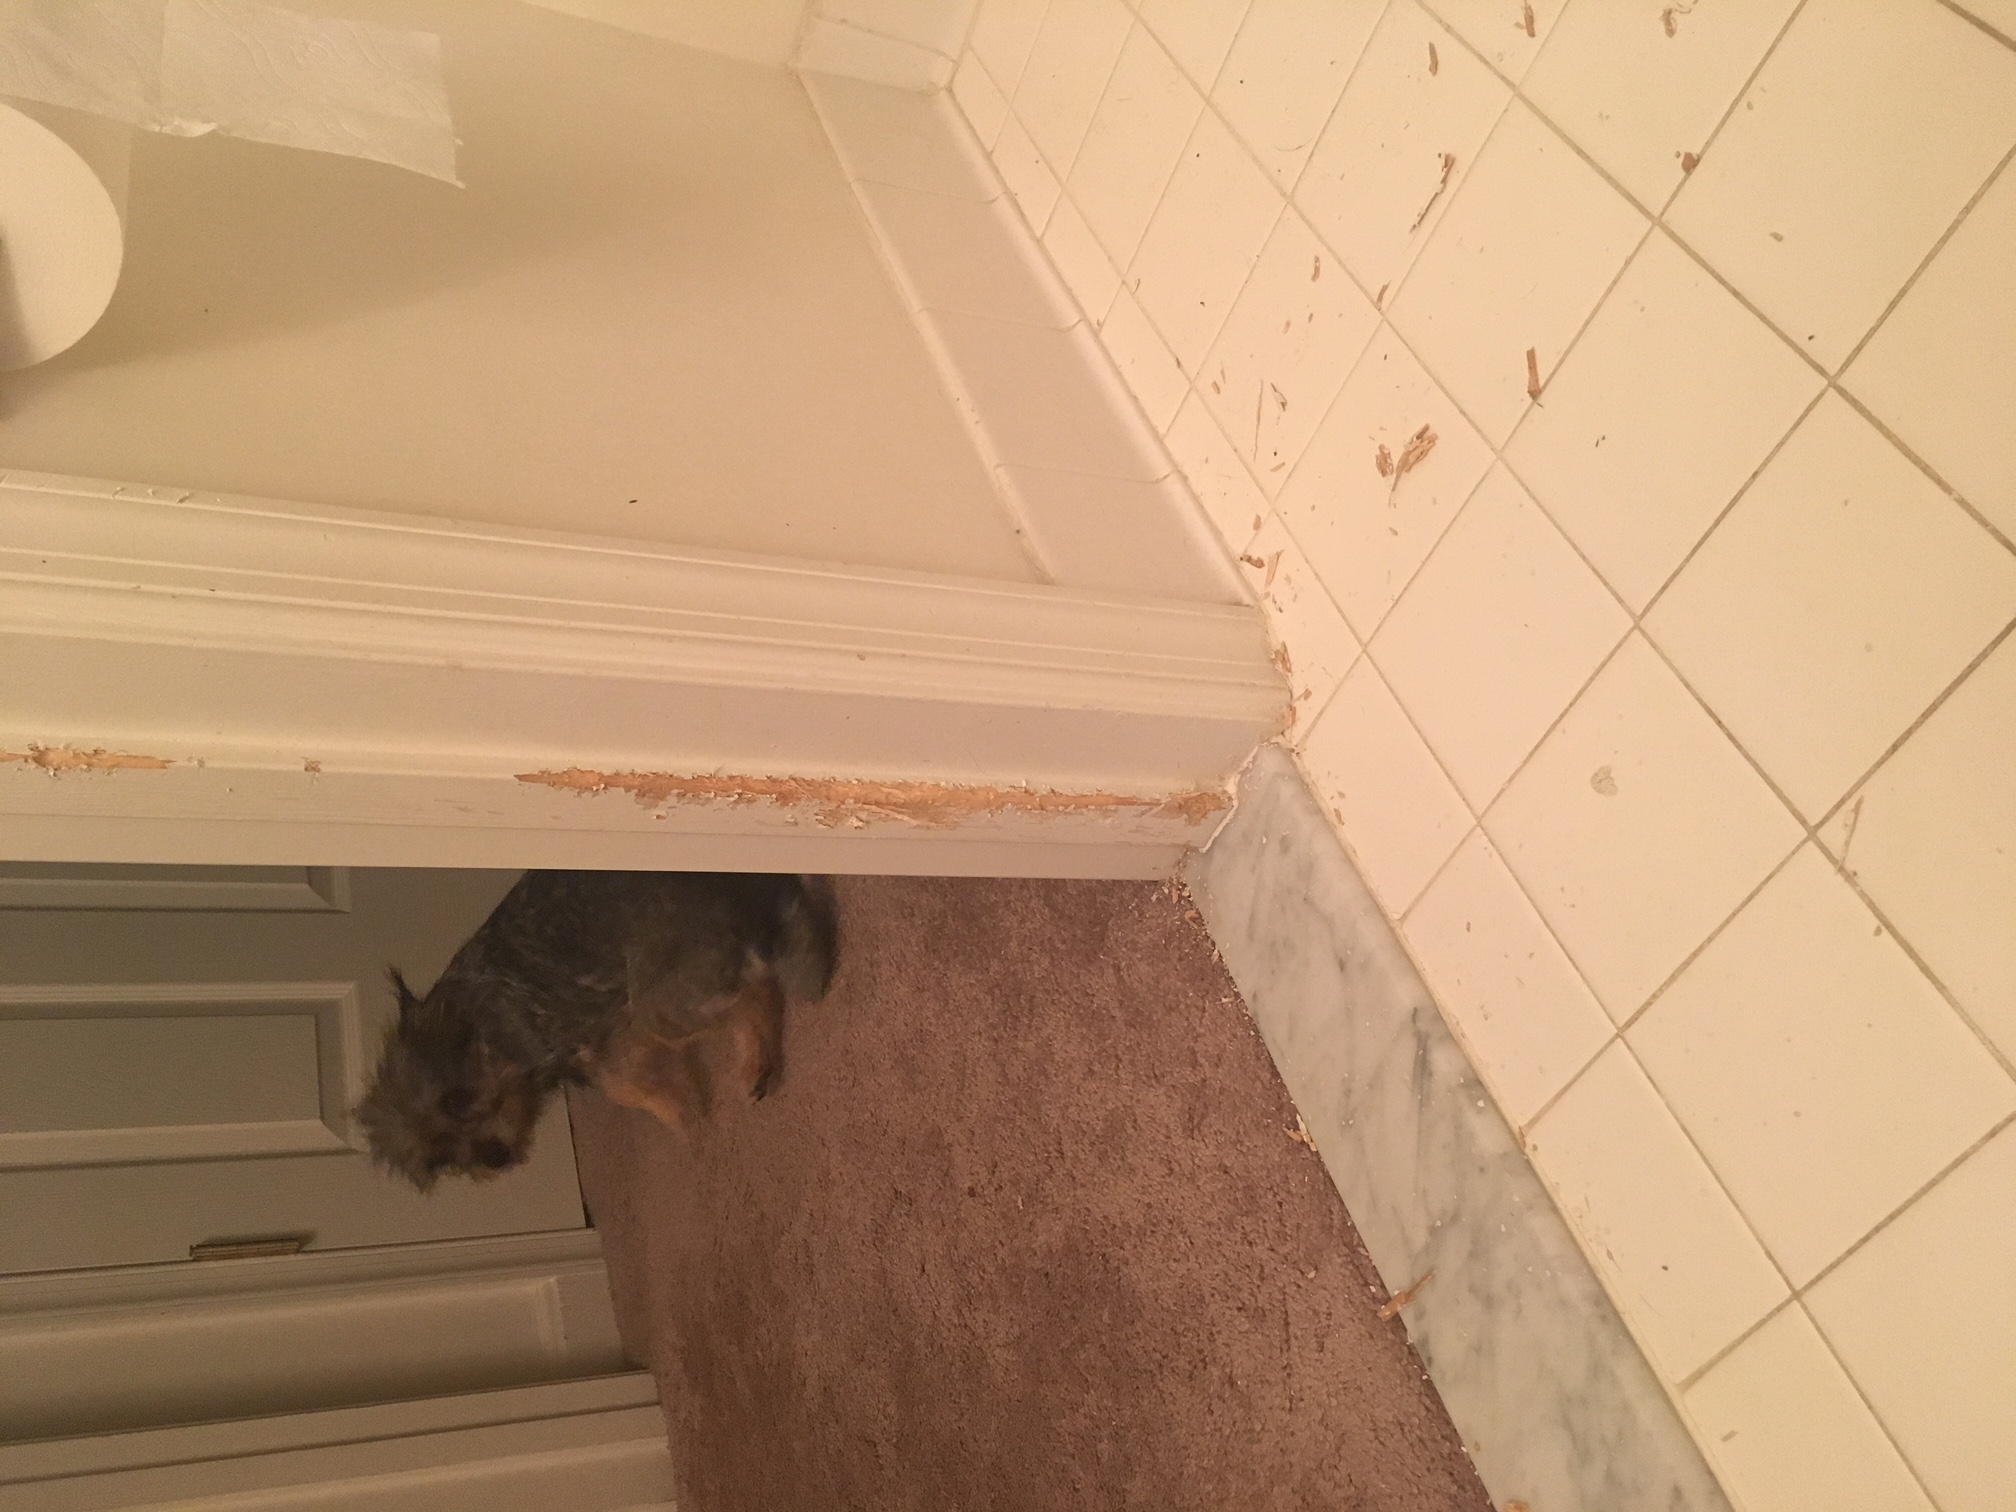 The patient damages door frames when not crated during owner absence.